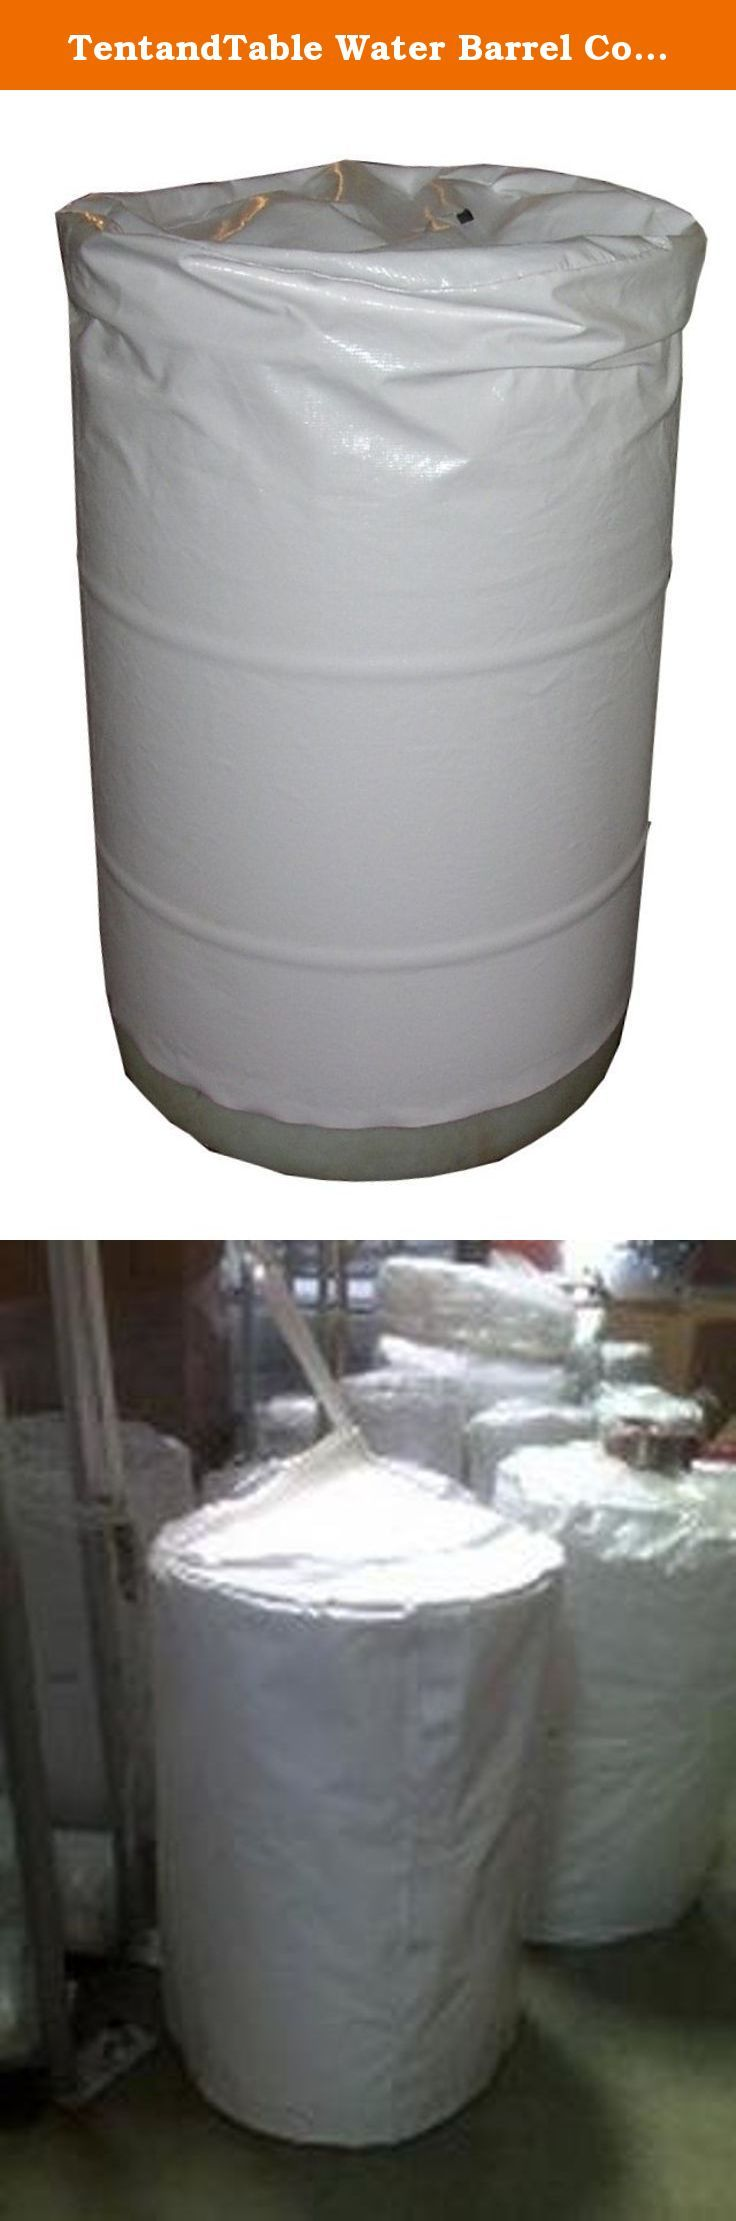 TentandTable Water Barrel Cover for 55 Gallon Barrel- Free Shipping. The The Barrel Bag is specifically designed to cover and protect 55 gallon water barrels, as well as the open lid 55 gallon barrels used for food and emergency storage supplies. There is no longer a need to throw those cumbersome drops and tarps over your barrels in order to try and protect them from the beating sun and unstable windy weather. Many barrels over a short period of time, especially those stored outside…